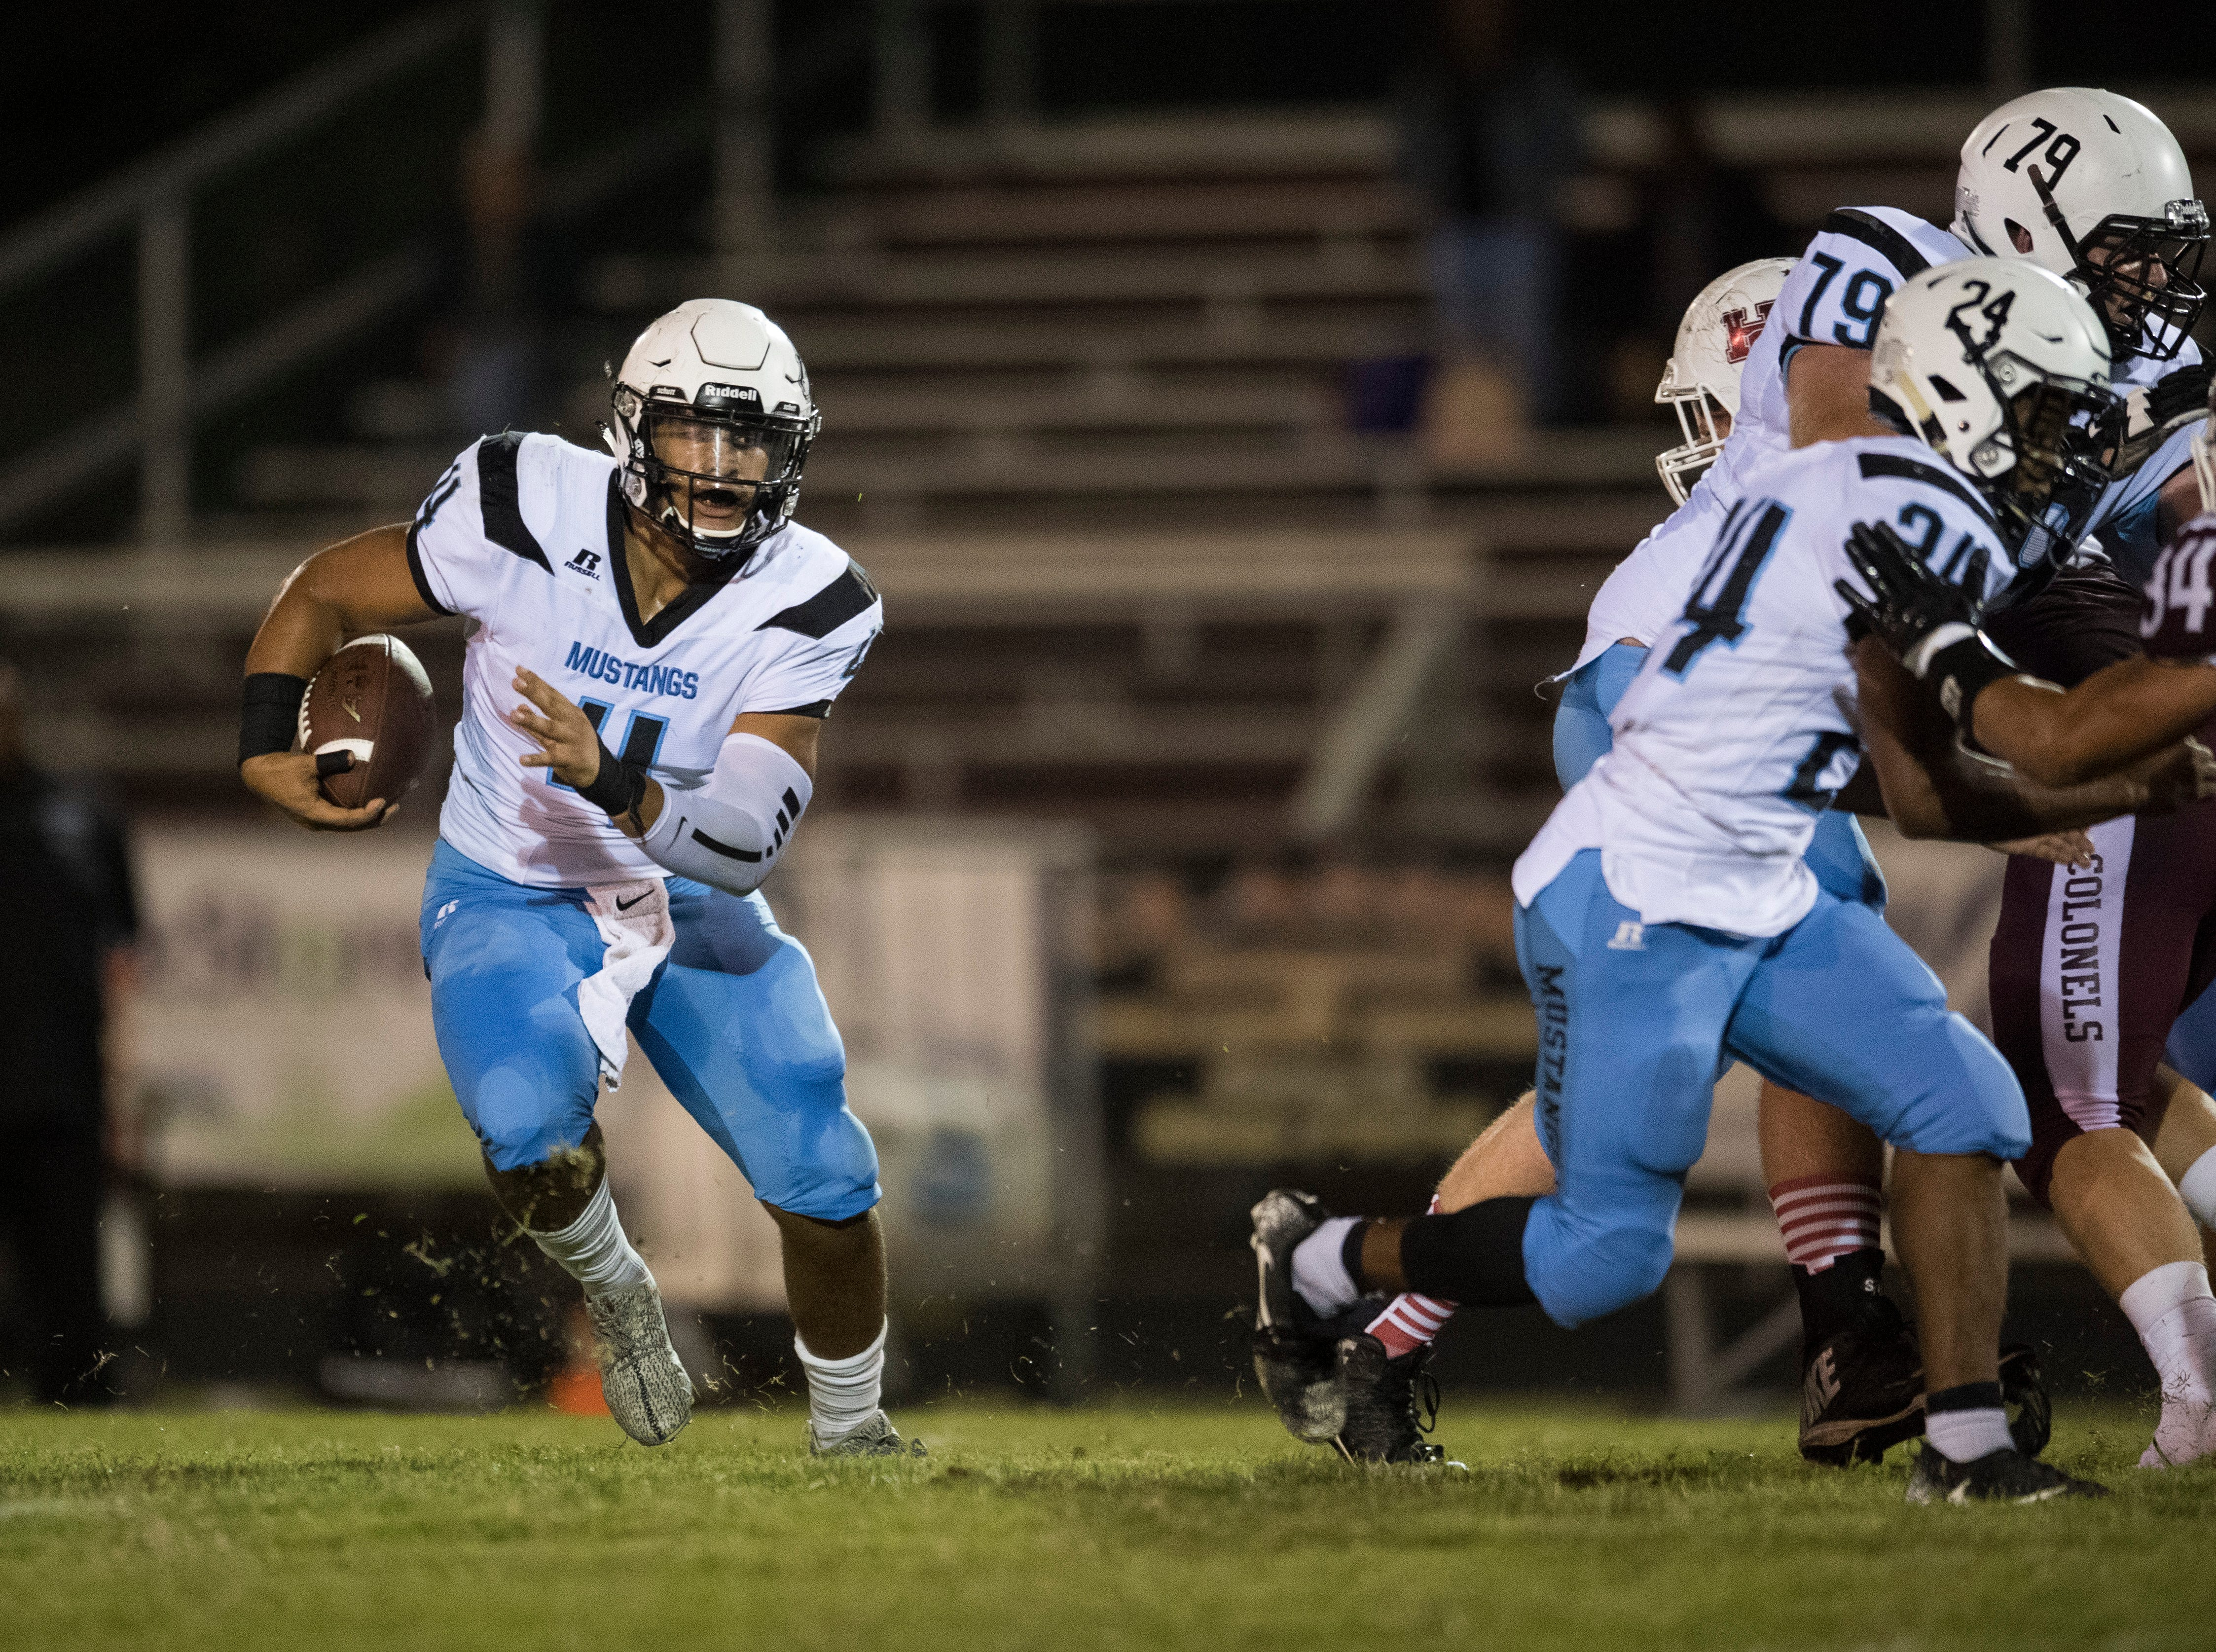 Muhlenberg County's Bronzyn Healy (4) carries the ball during the Henderson vs Muhlenberg County game at Colonel Stadium Friday, Sept. 28, 2018. The Henderson County Colonels won, 61-6.